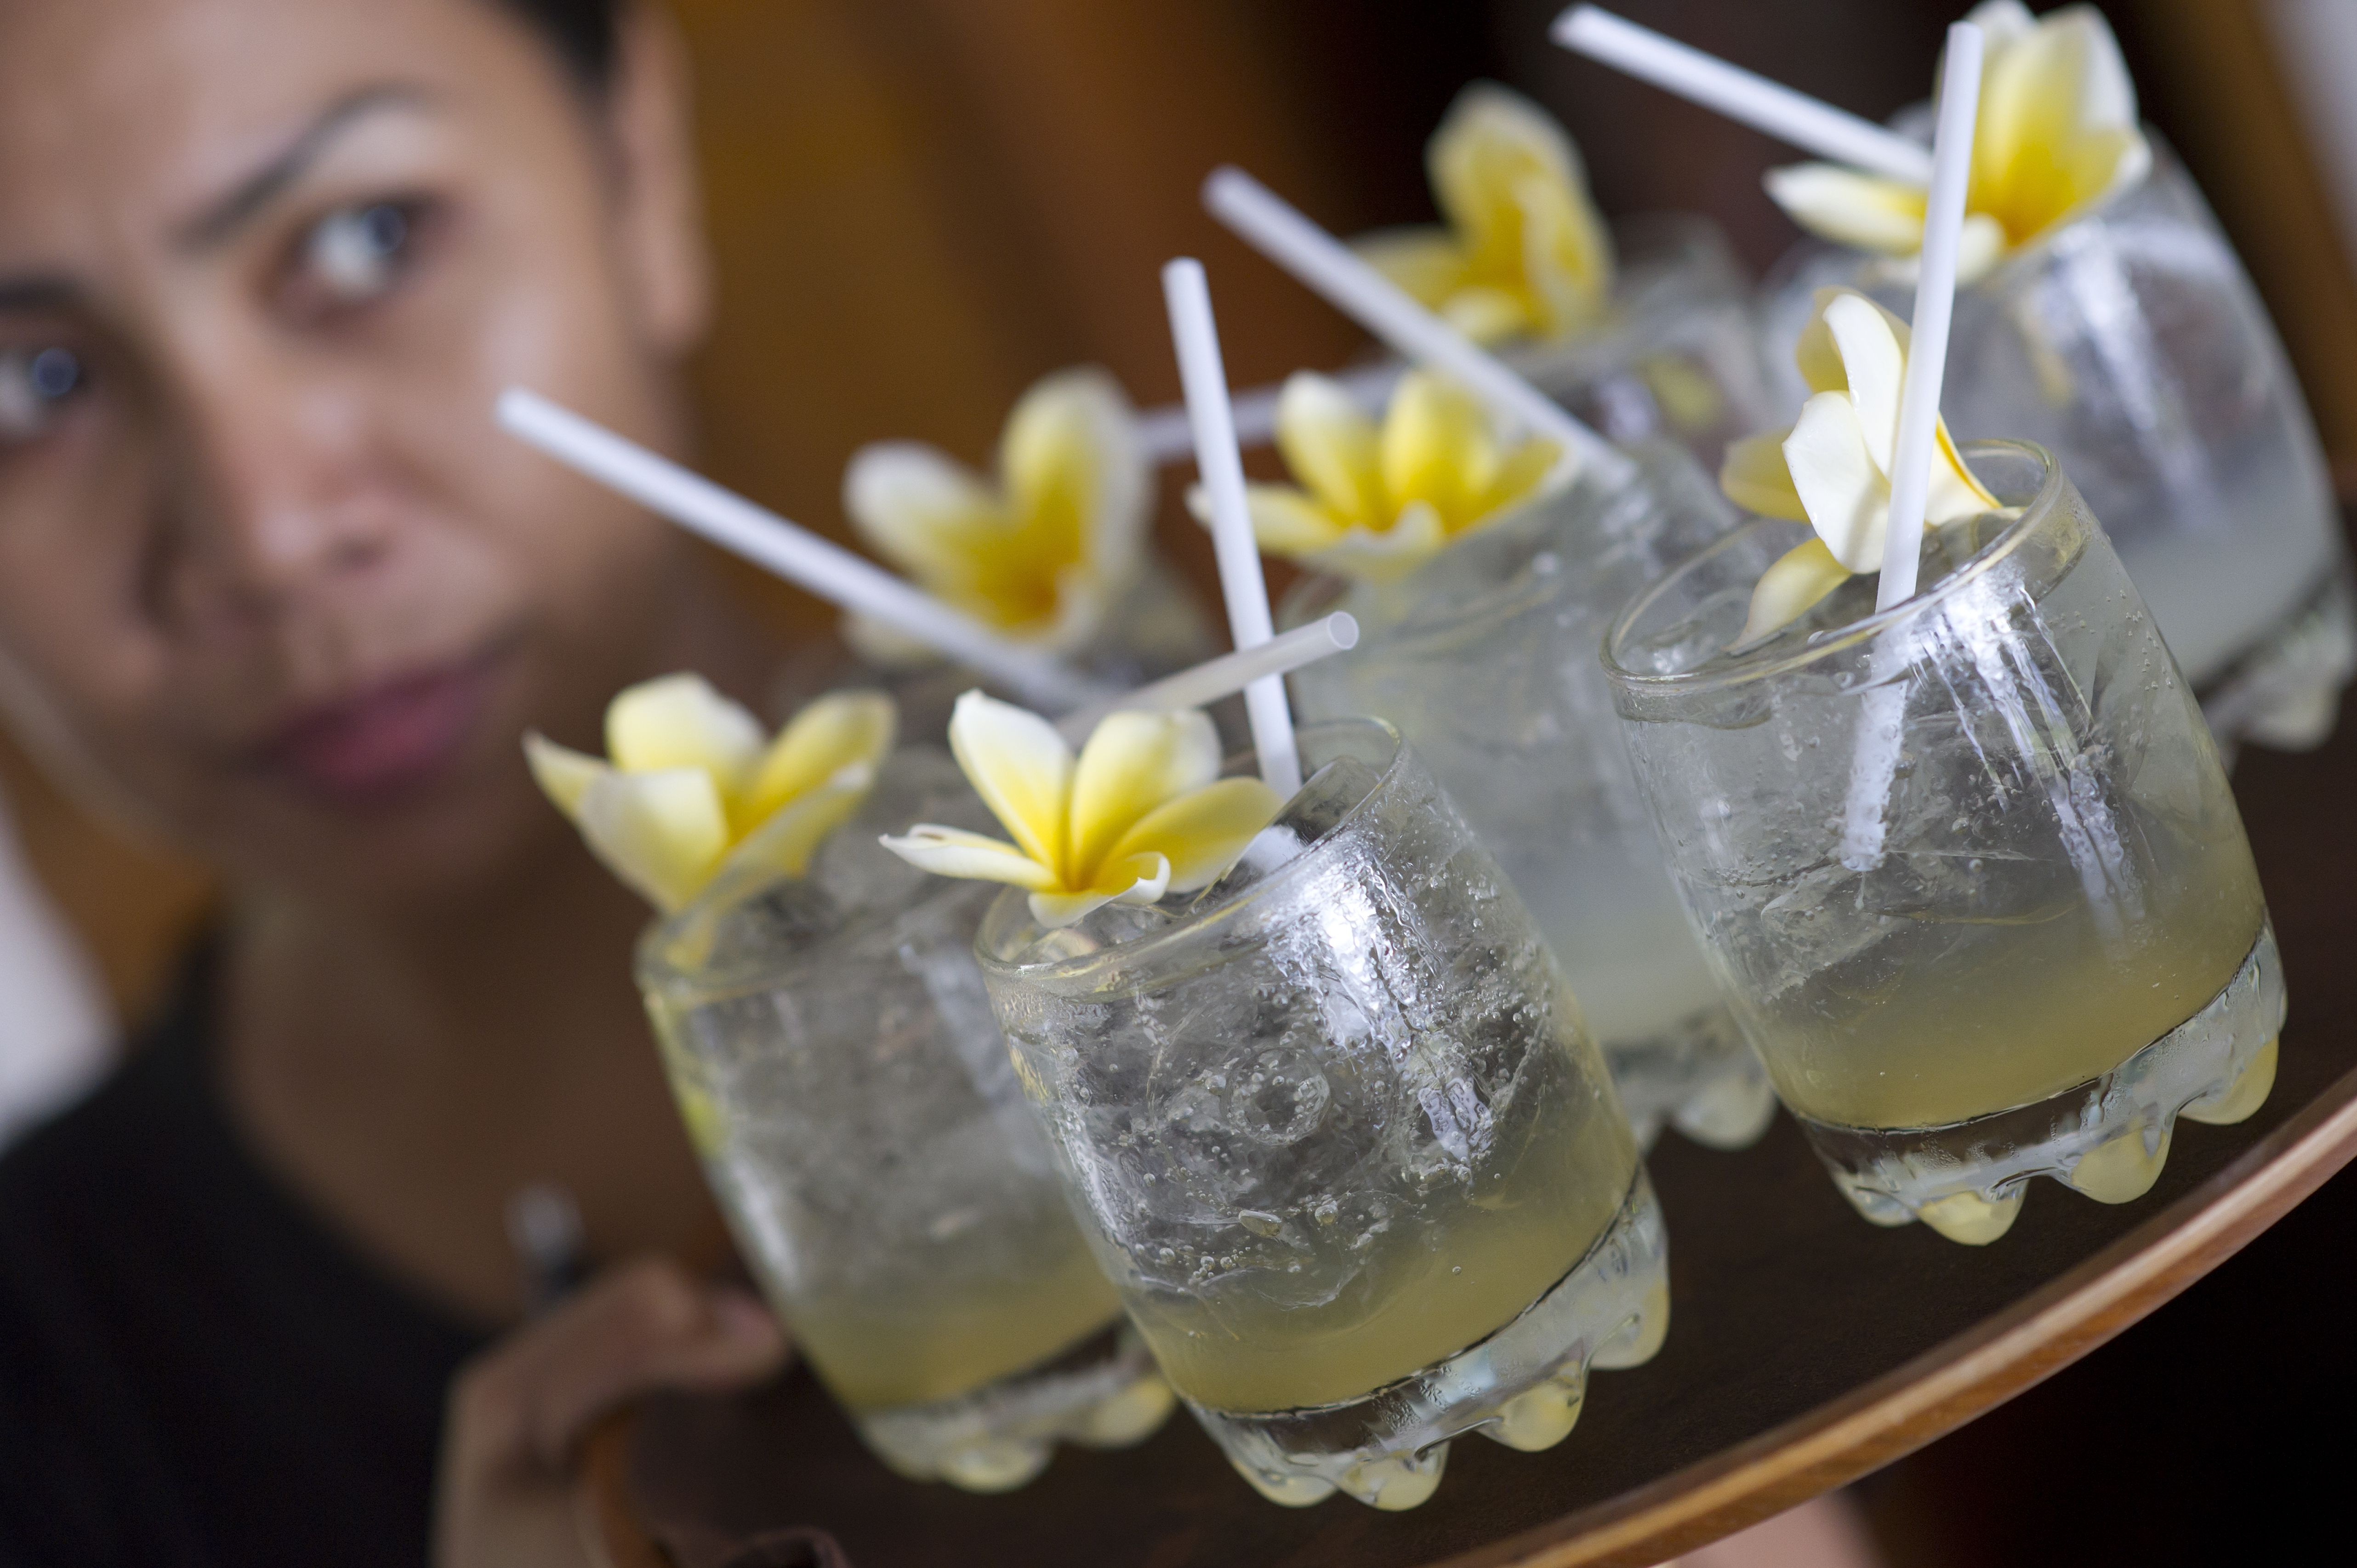 A tray of cocktails in Bali